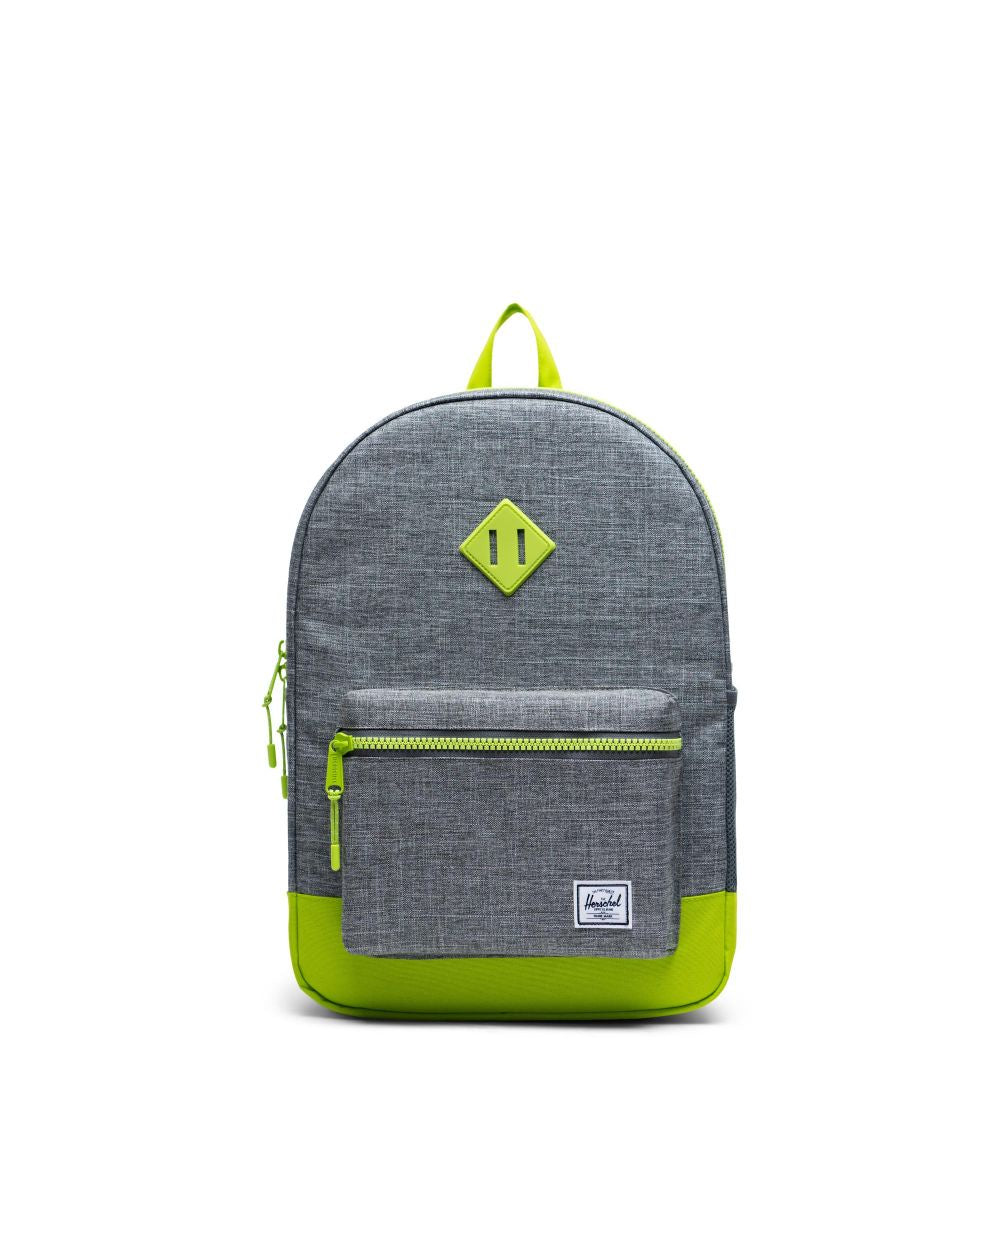 HERSCHEL - HERITAGE YOUTH XL BACKPACK IN RAVEN CROSSHATCH/LIME GREEN